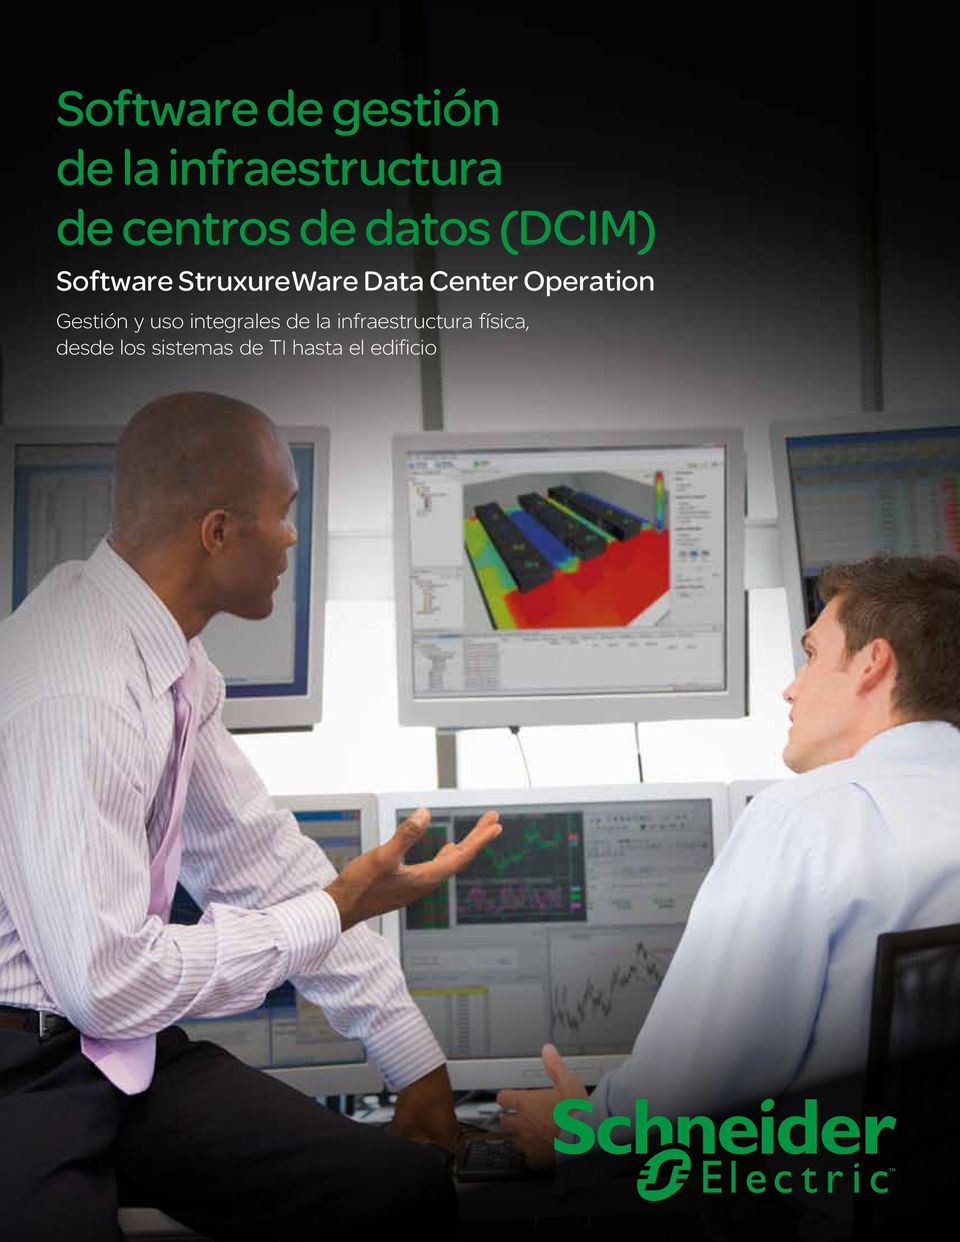 Software StruxureWare Data Center Operation Gestión y uso integrales